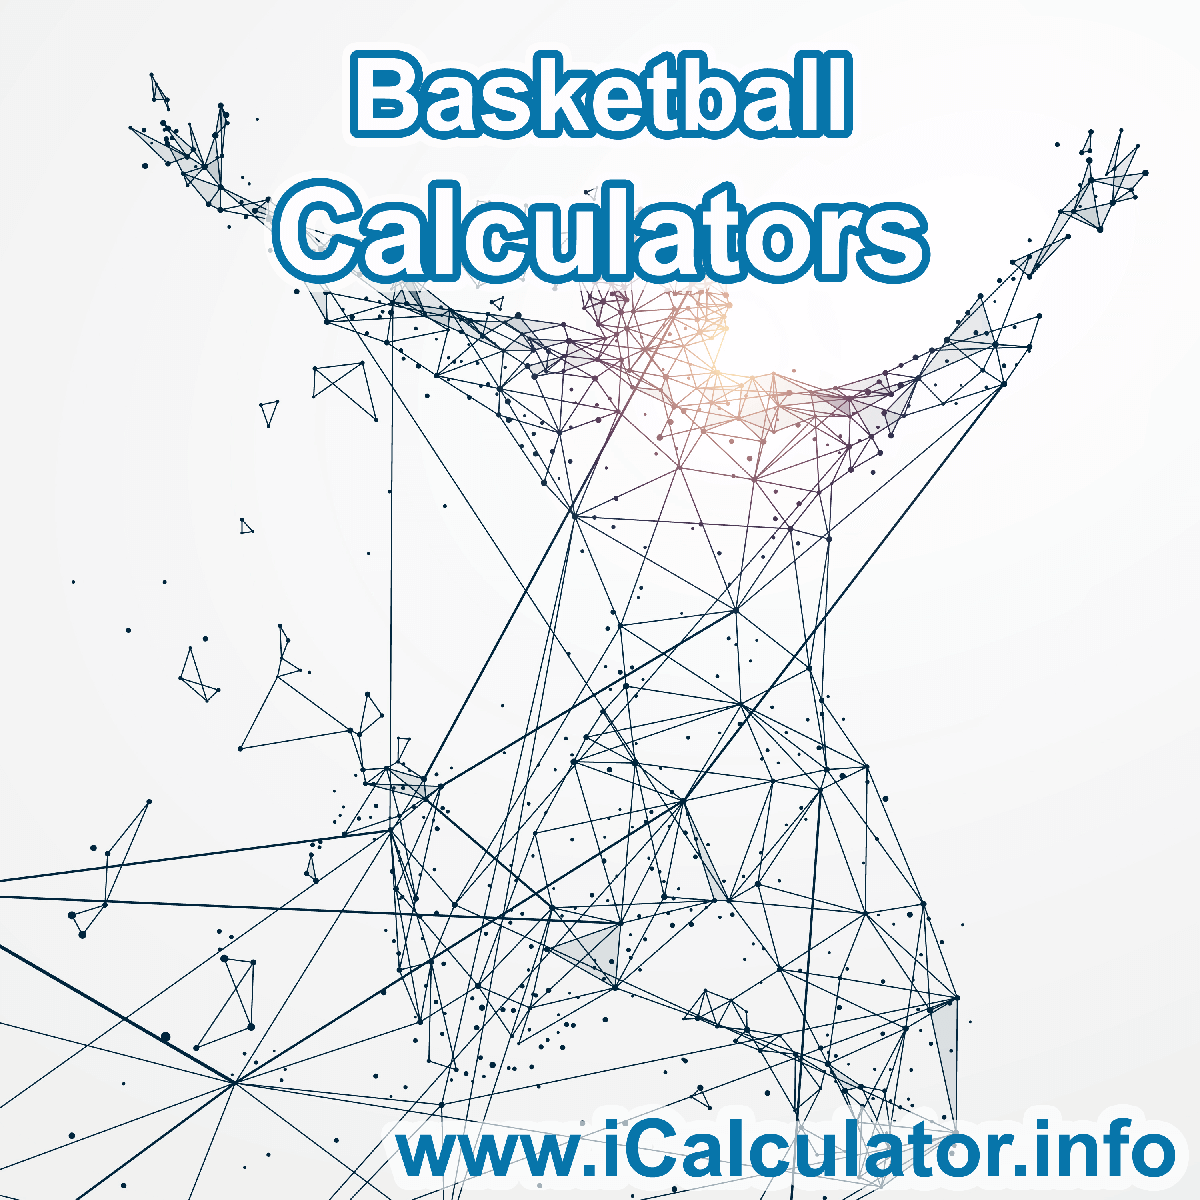 Basketball Calculator. This image shows an Basketball player playing basketball - by iCalculator